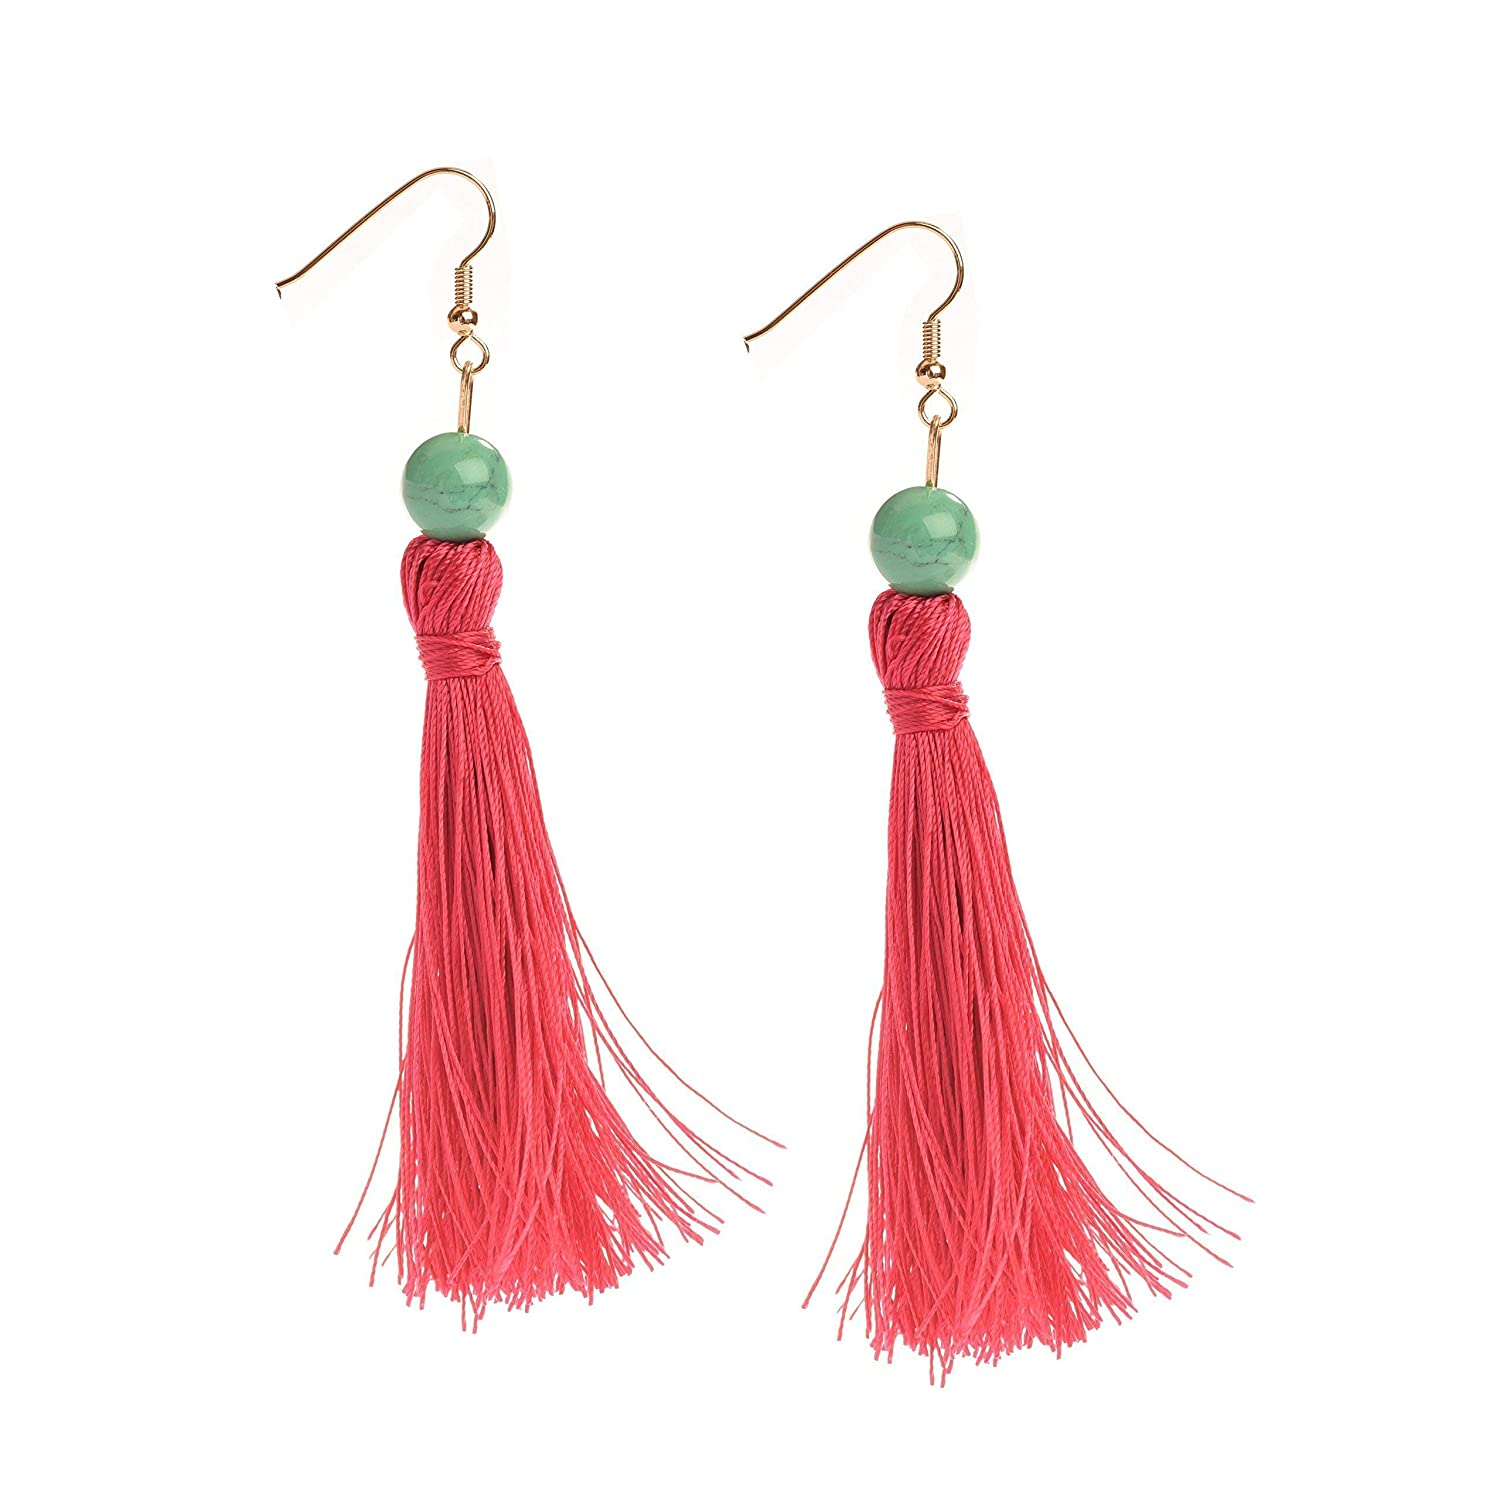 The Original Big Little Lies Tassel Earrings